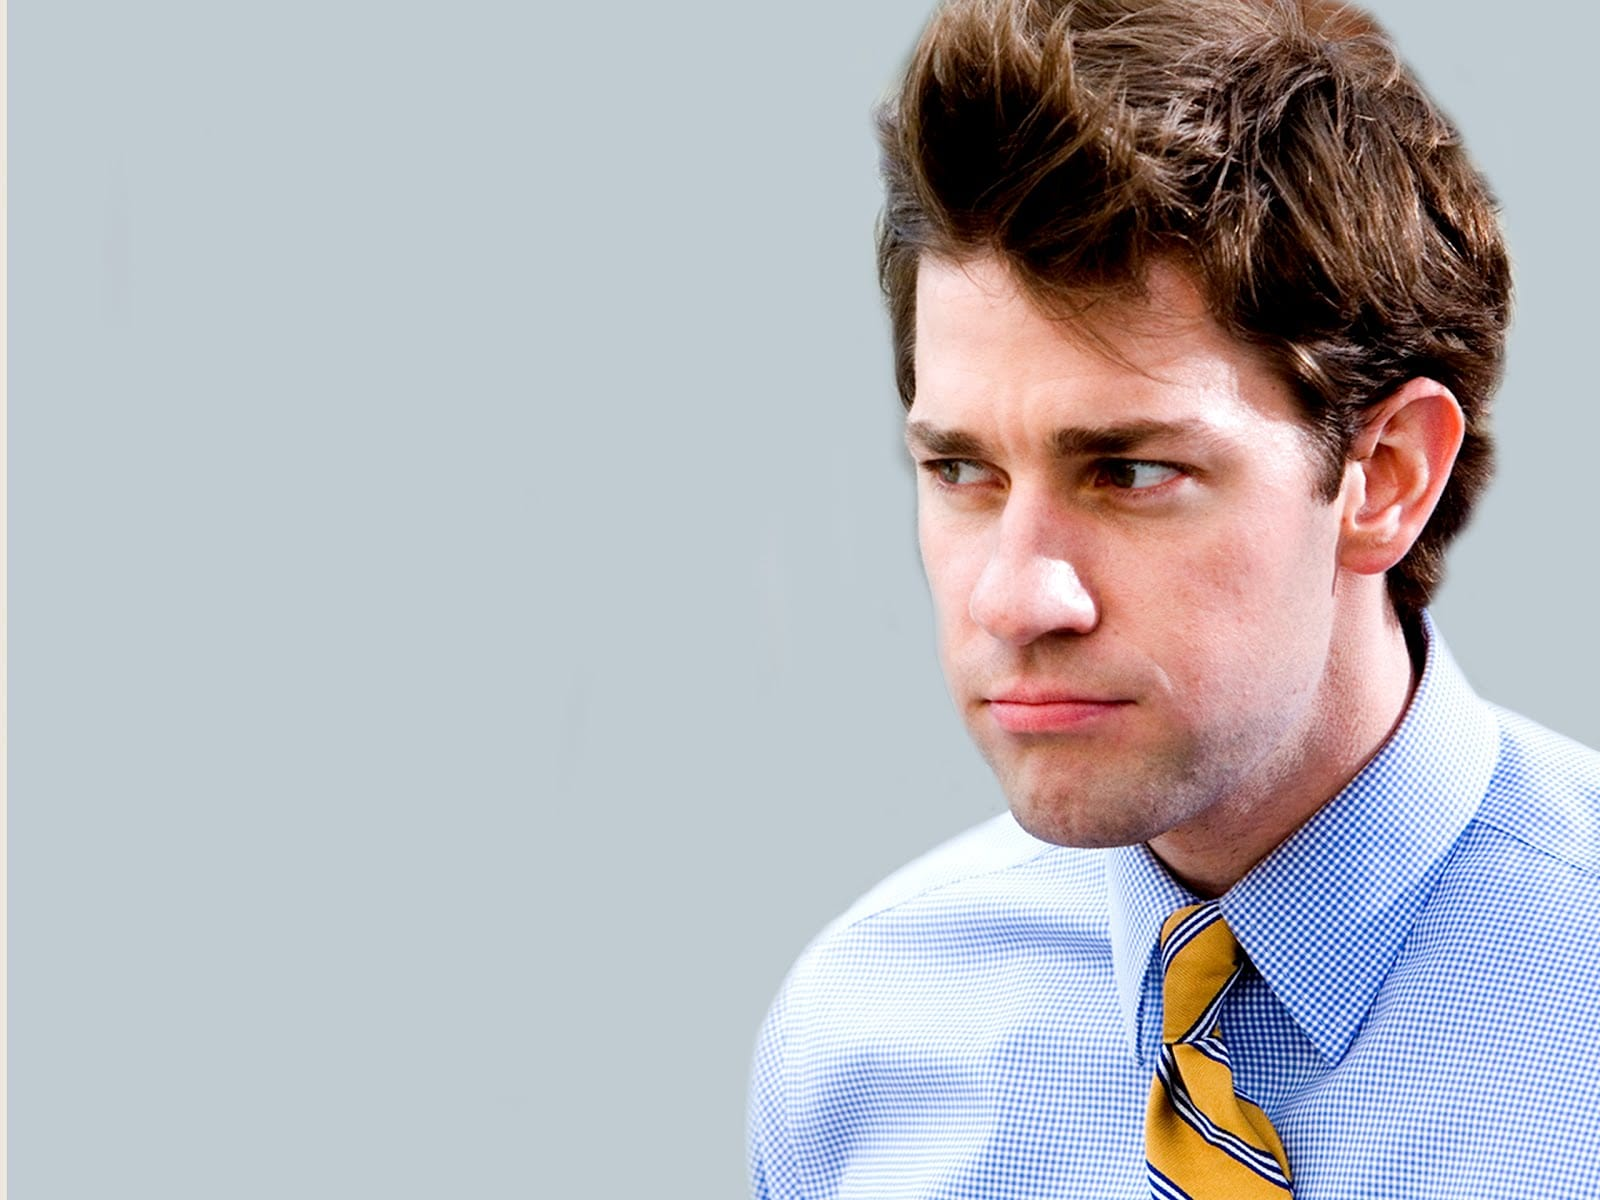 John Krasinski Wallpapers hd